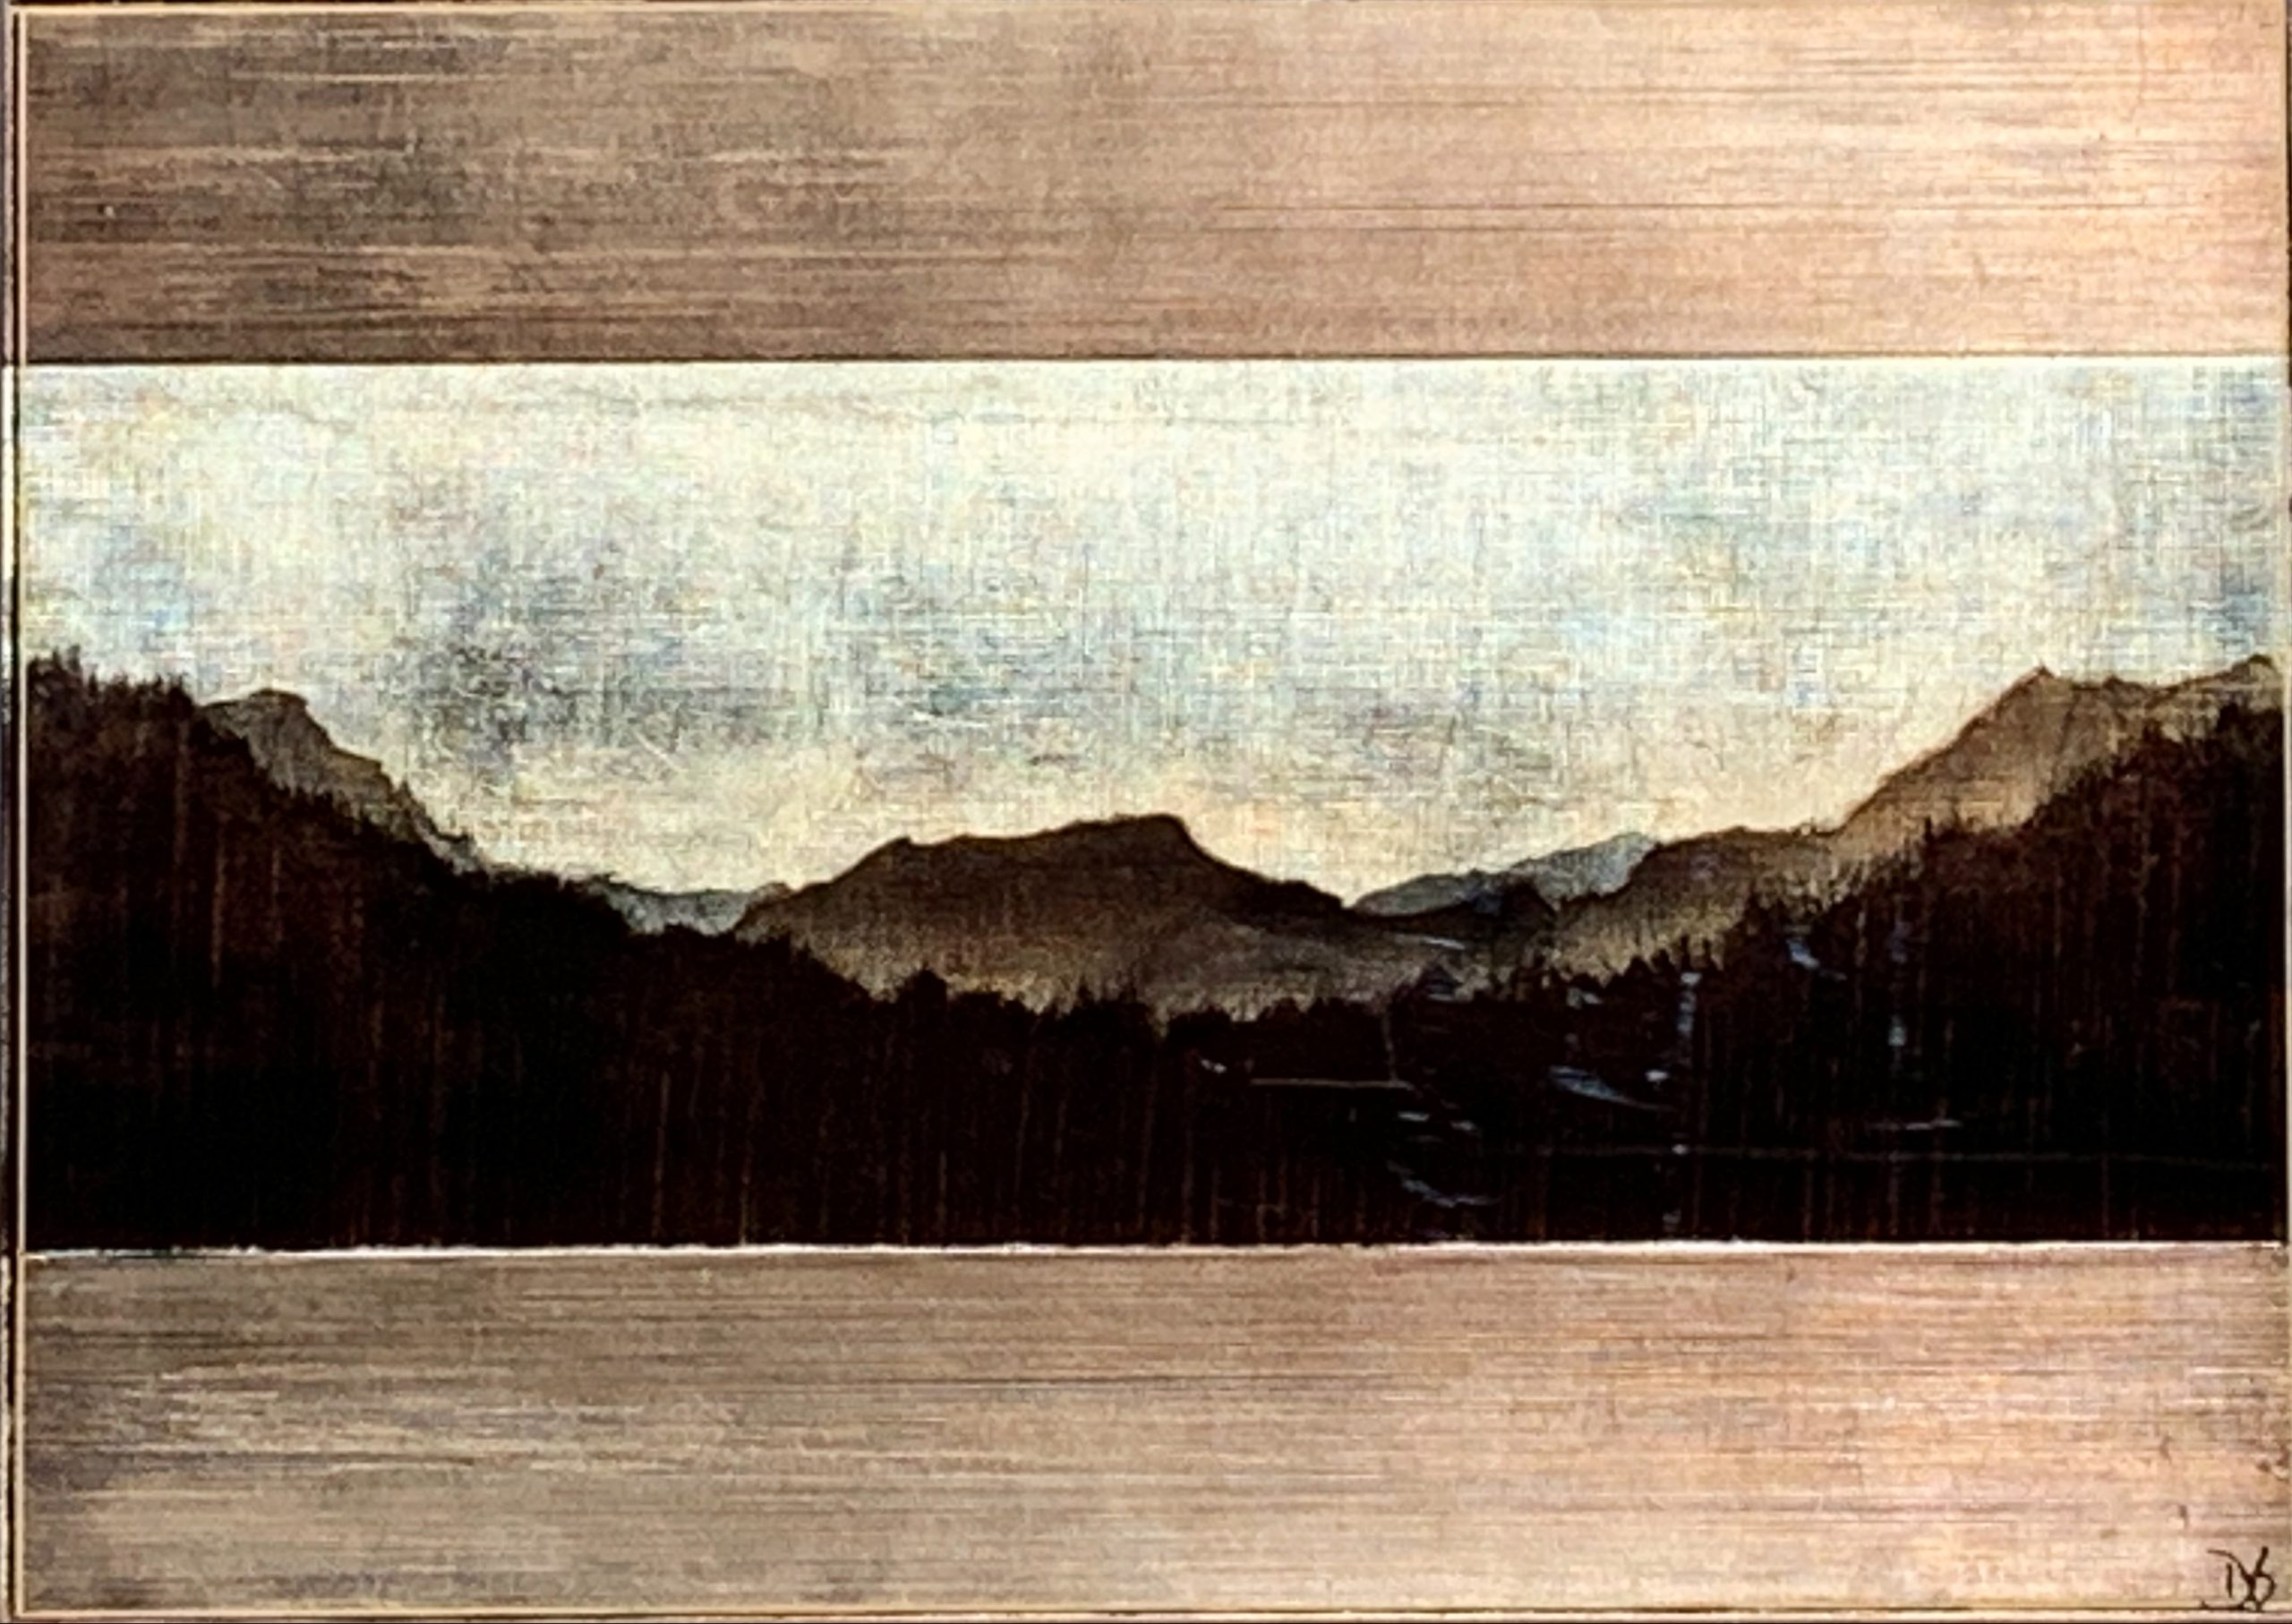 Into the Wild, mixed media landscape painting by David Graff | Effusion Art Gallery + Cast Glass Studio, Invermere BC